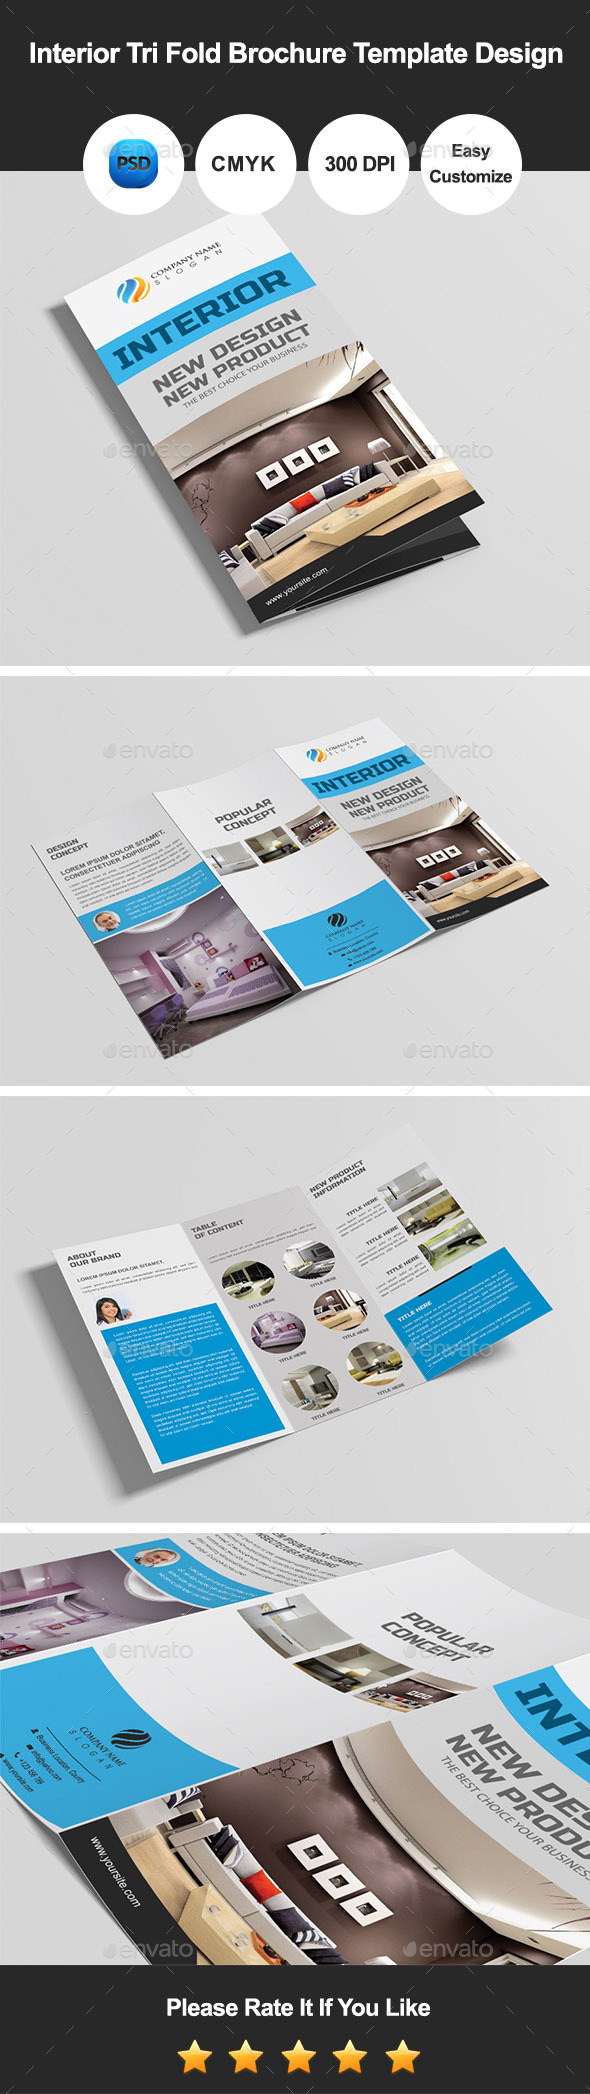 GraphicRiver Interior Tri Fold Brochure Template Design 9694137